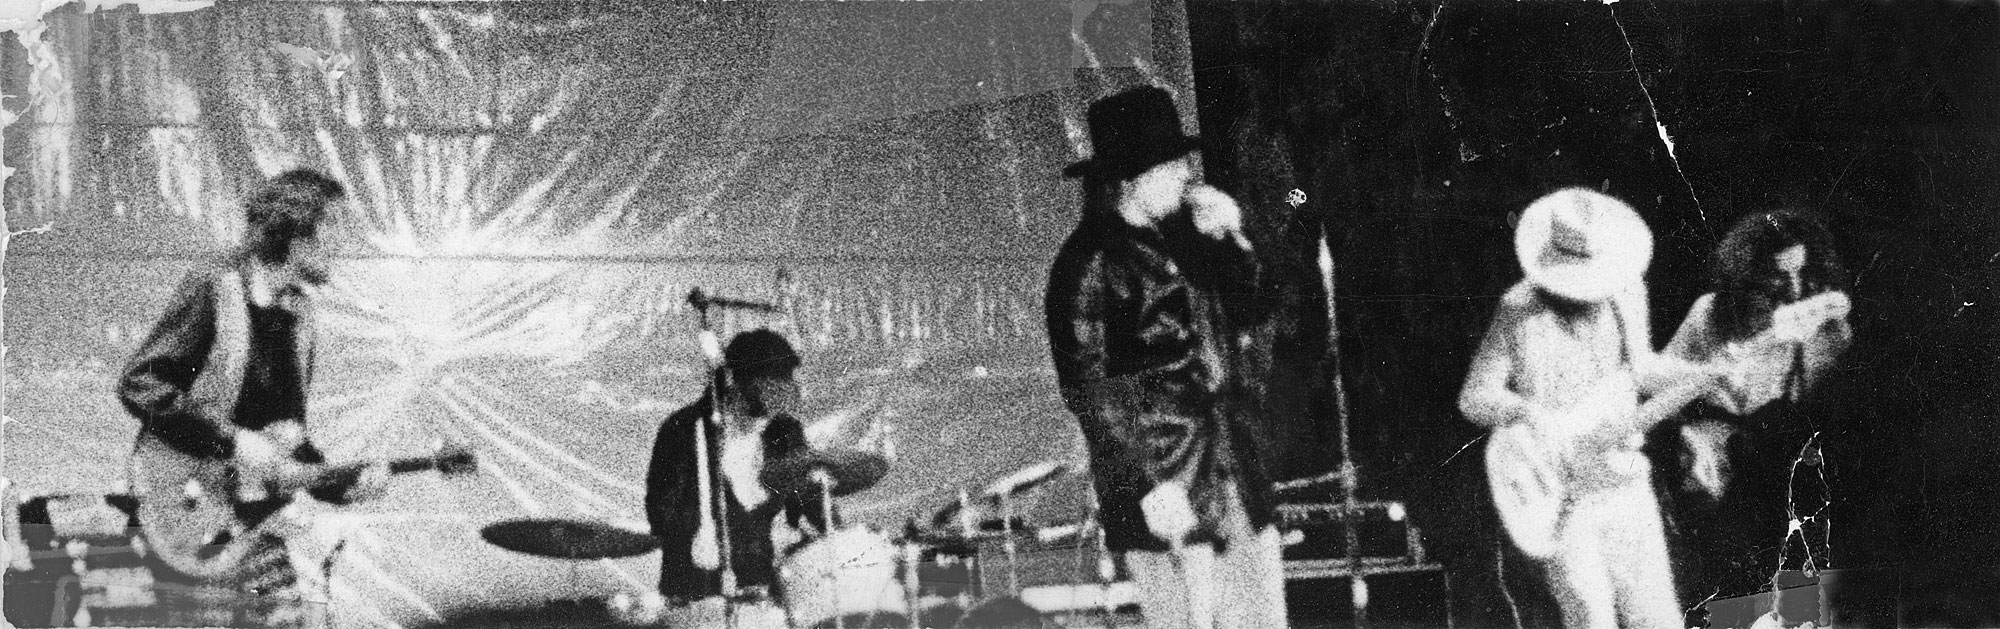 Kim Torgerson photo of Captain Beefheart and His Magic Band at Ludlow Garage in Cincinnati 1970